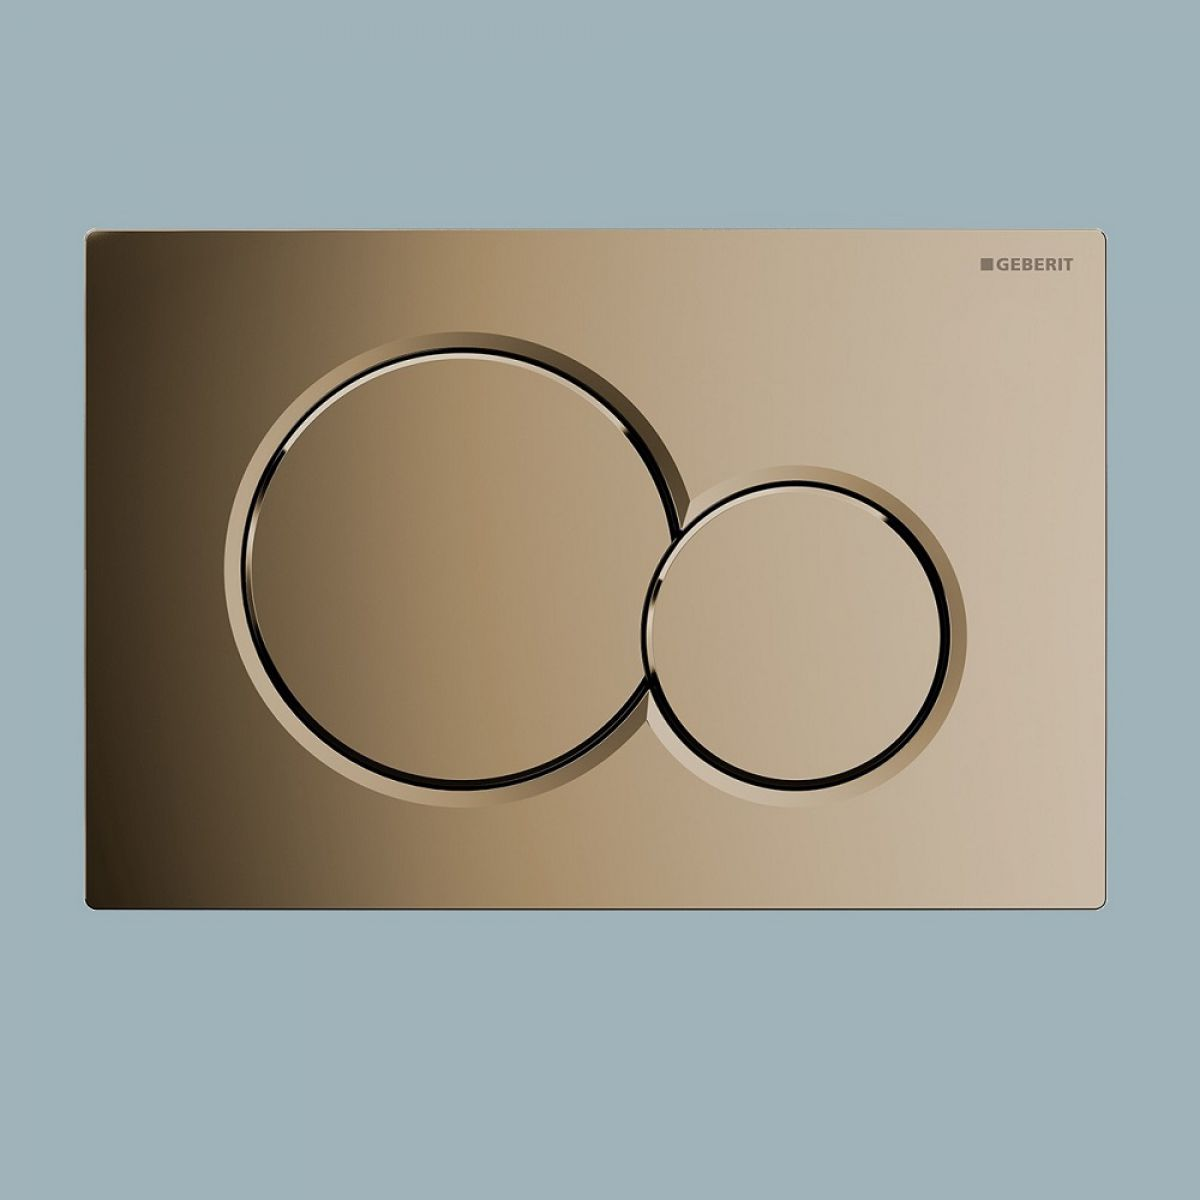 Geberit sigma01 flush plate uk bathrooms for Geberit flush